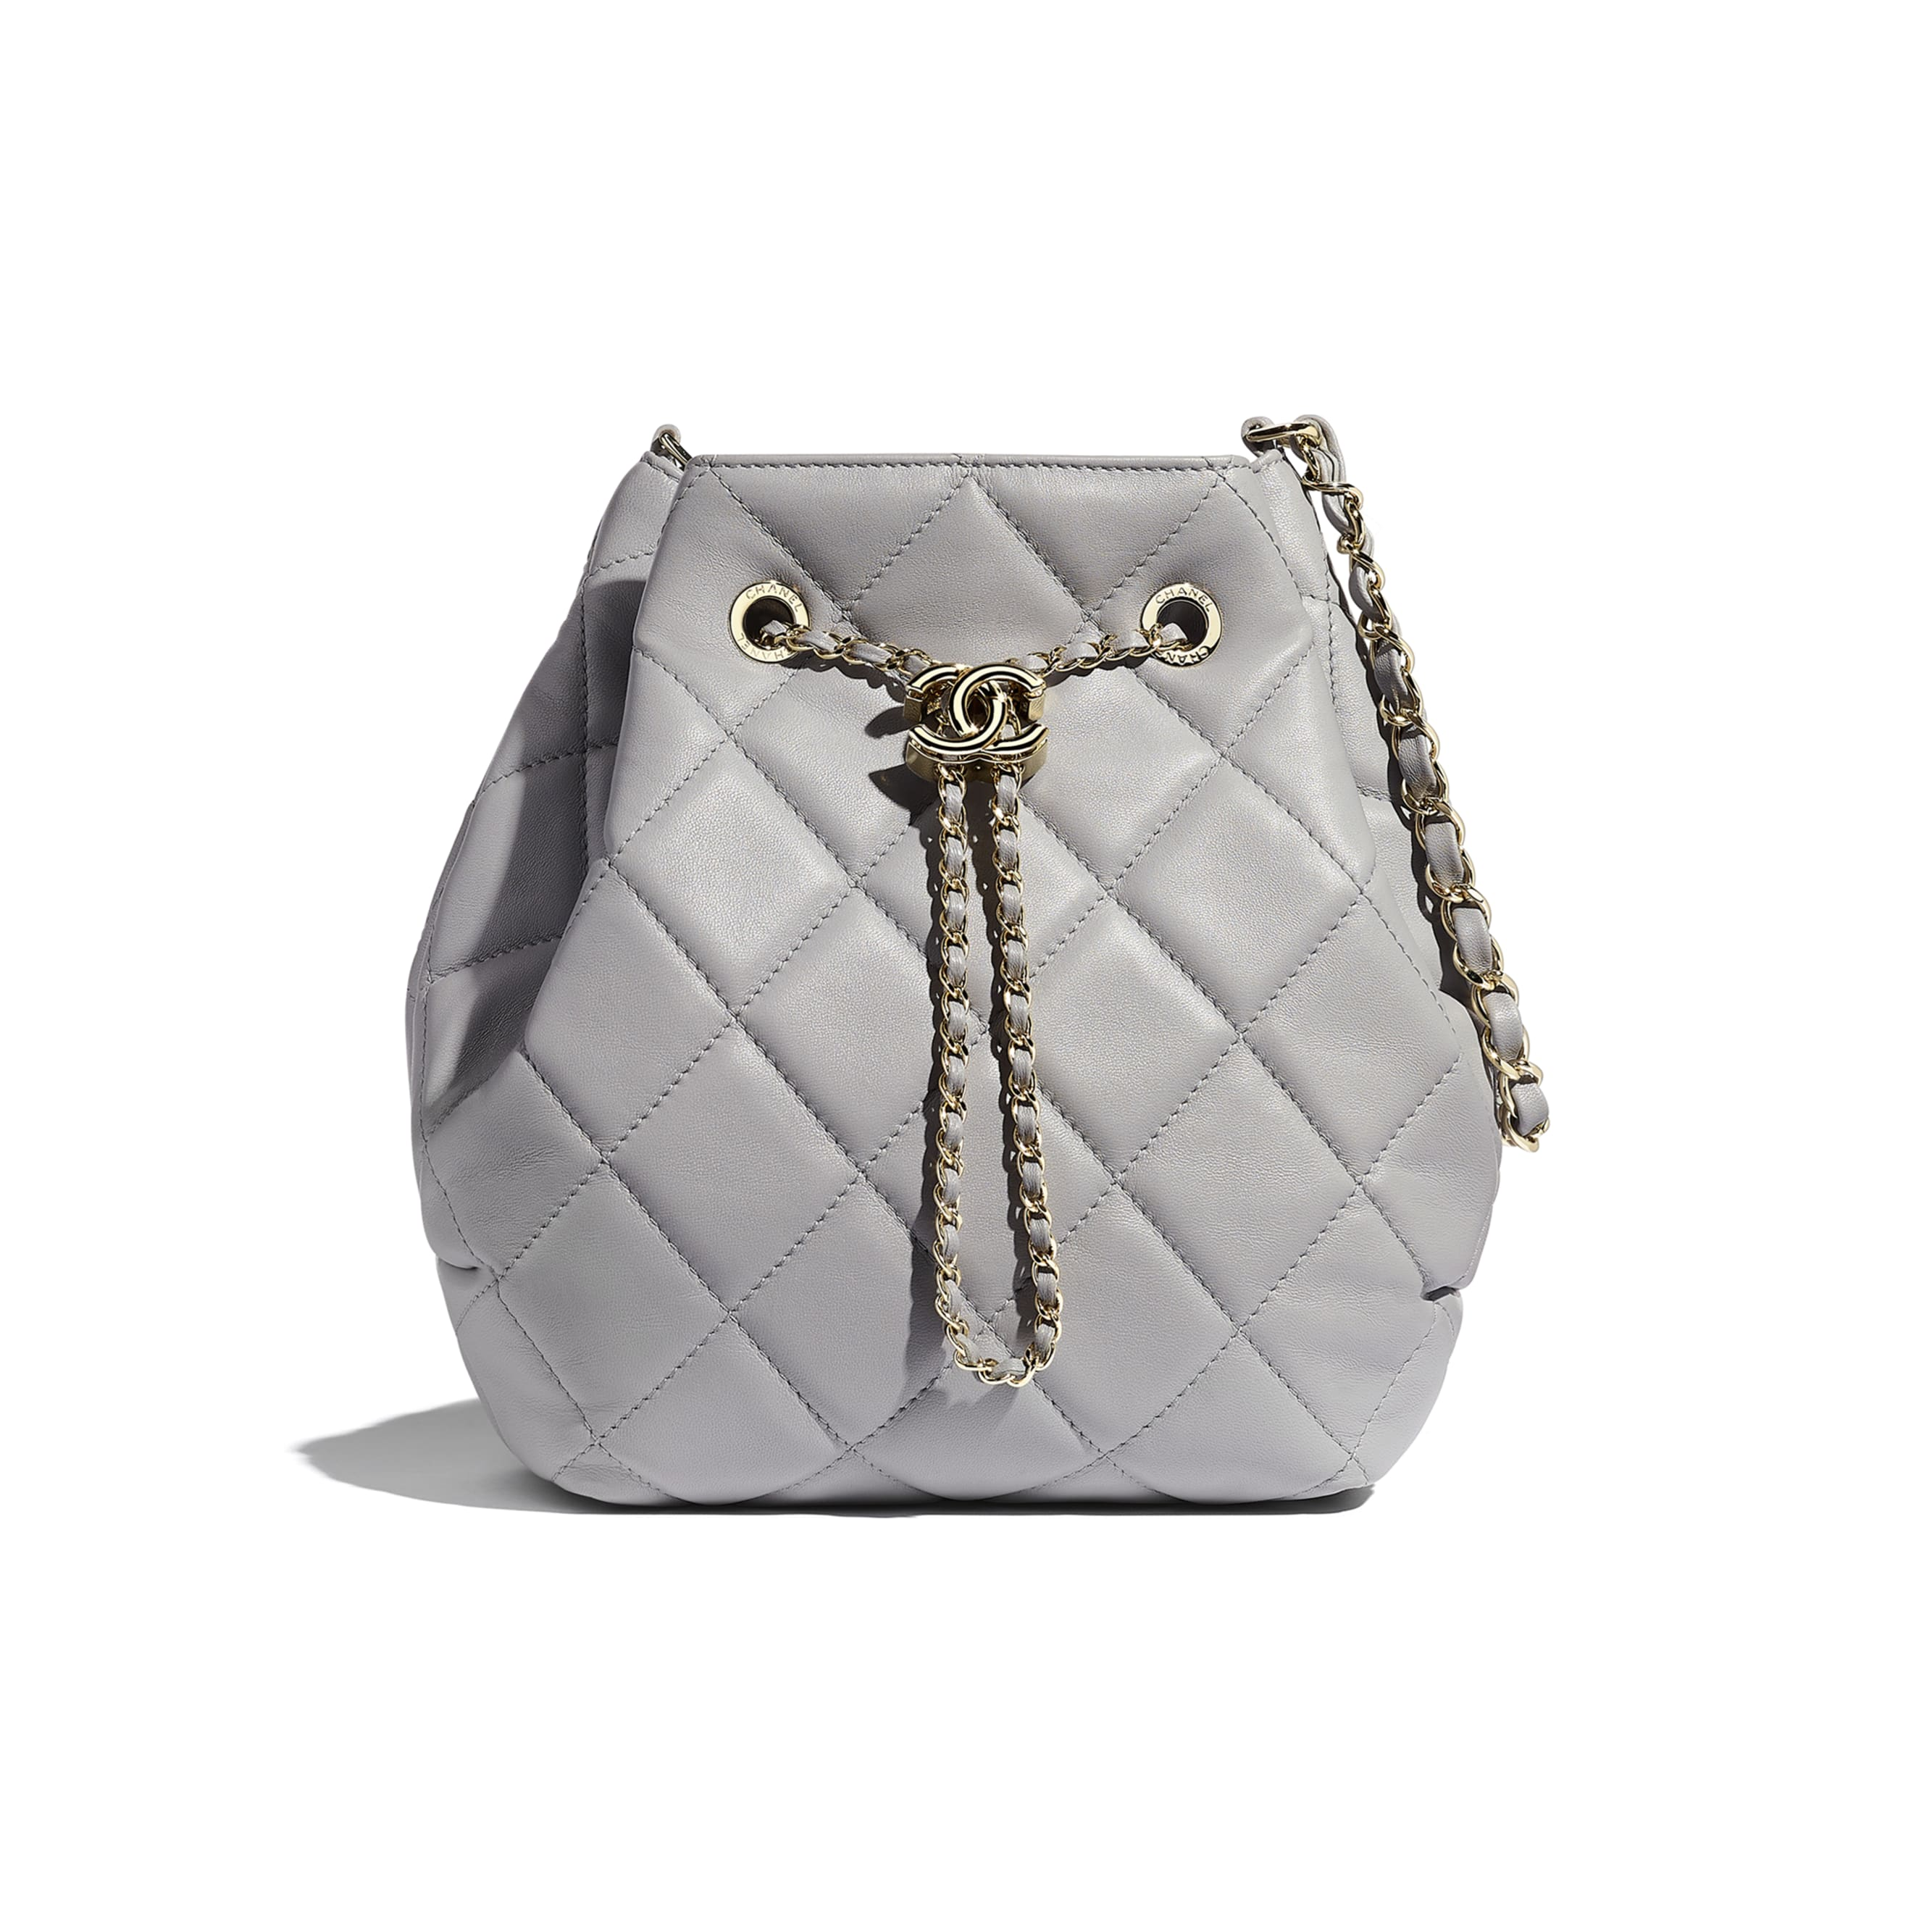 Large Drawstring Bag - Light Grey - Lambskin - CHANEL - Default view - see standard sized version